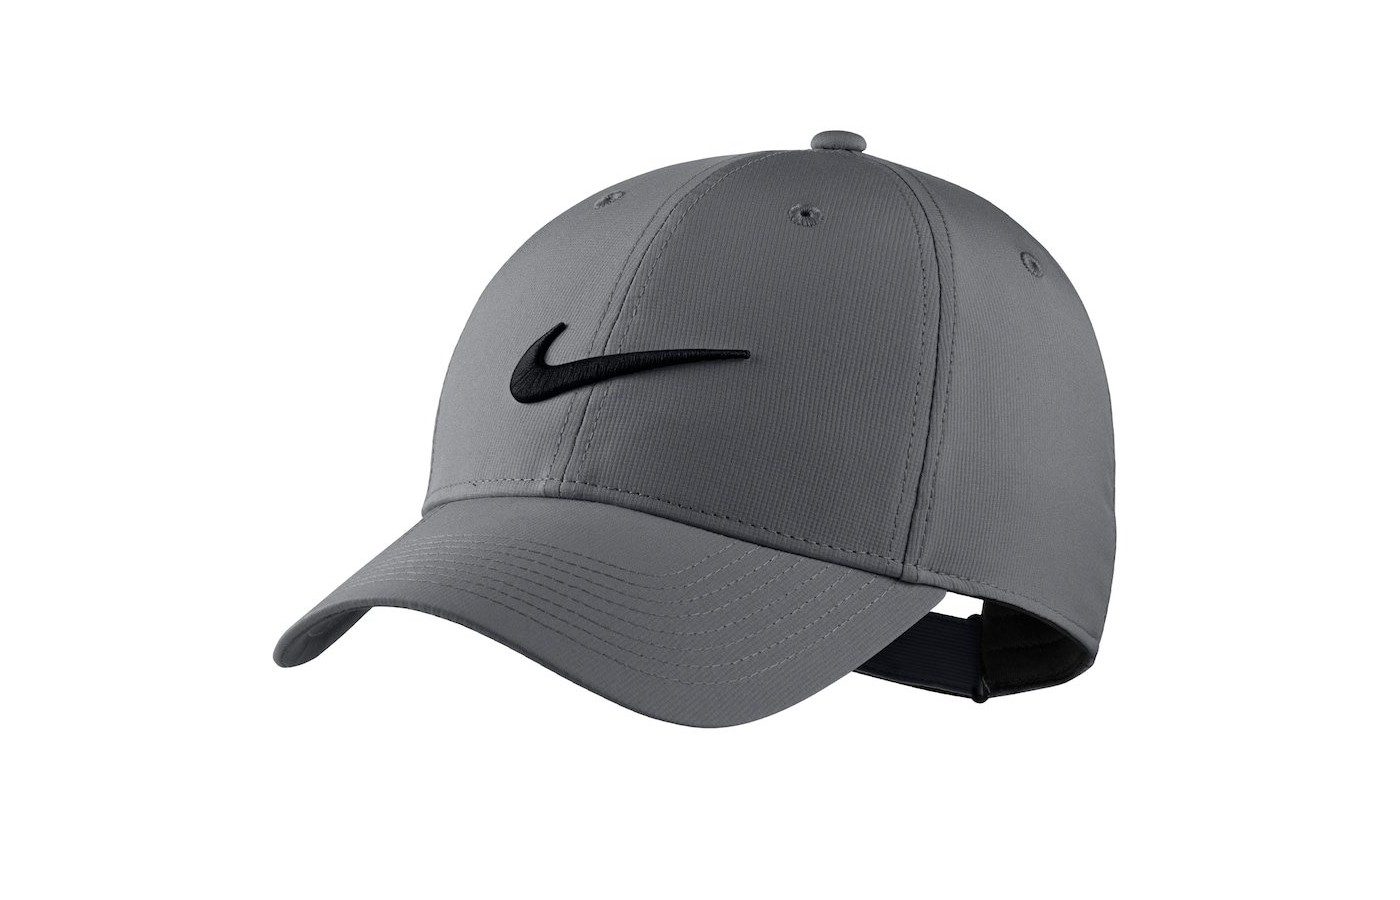 Nike Golf Dri-FIT gray